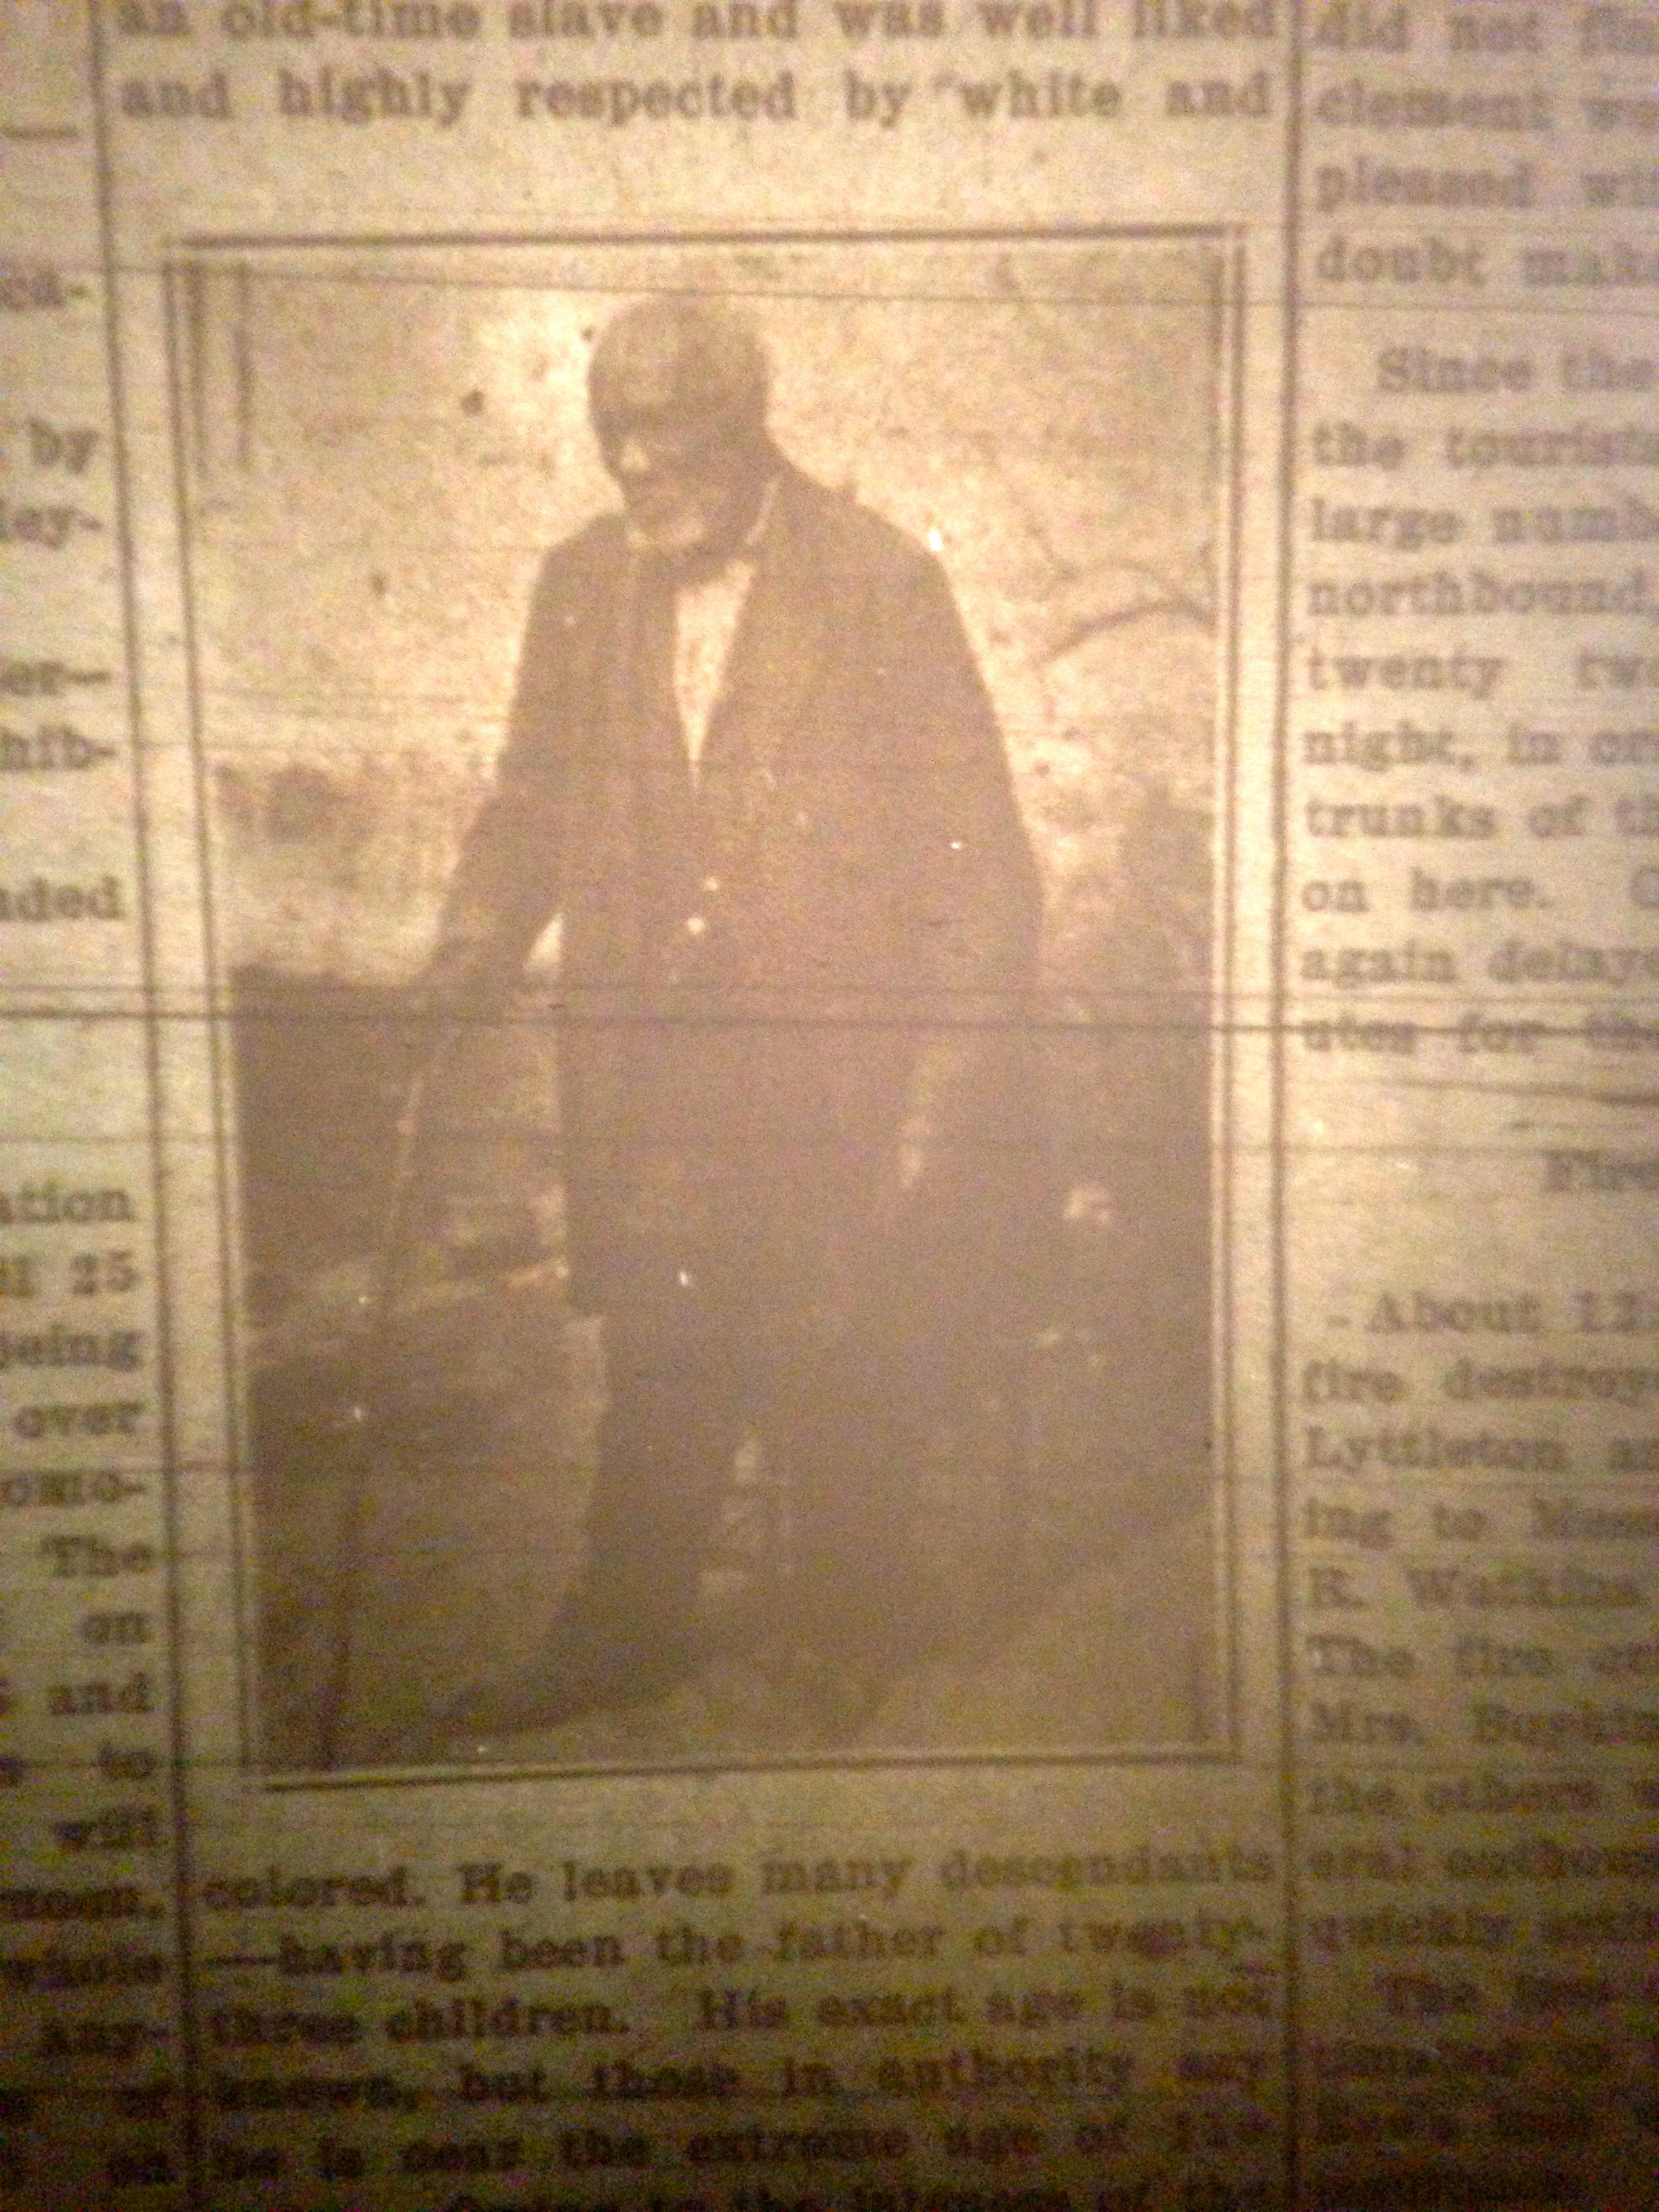 Patriarch of the Worcester Perkins family, King was born in 1802 and died in 1912 at age 110. This photo is from the Camden (SC) Chronicle at the time of his death.